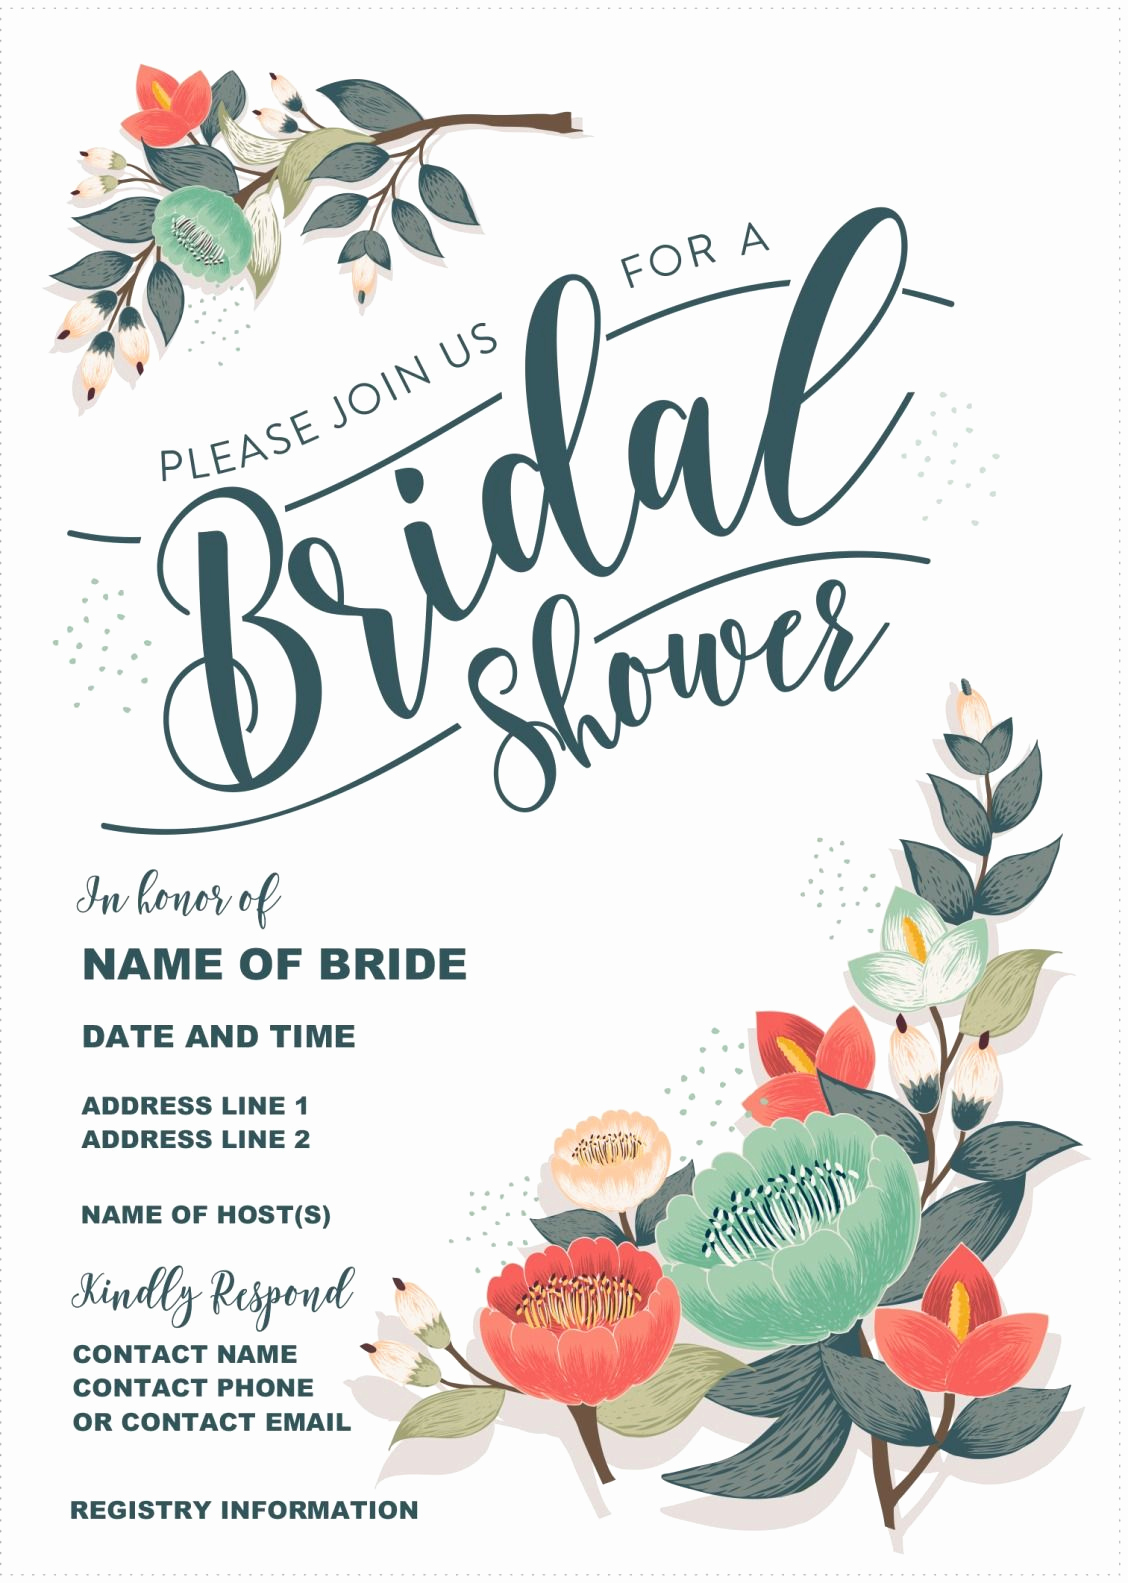 Printable Bridal Shower Invitations New Our Gorgeous Printable Bridal Shower Invitation is totally